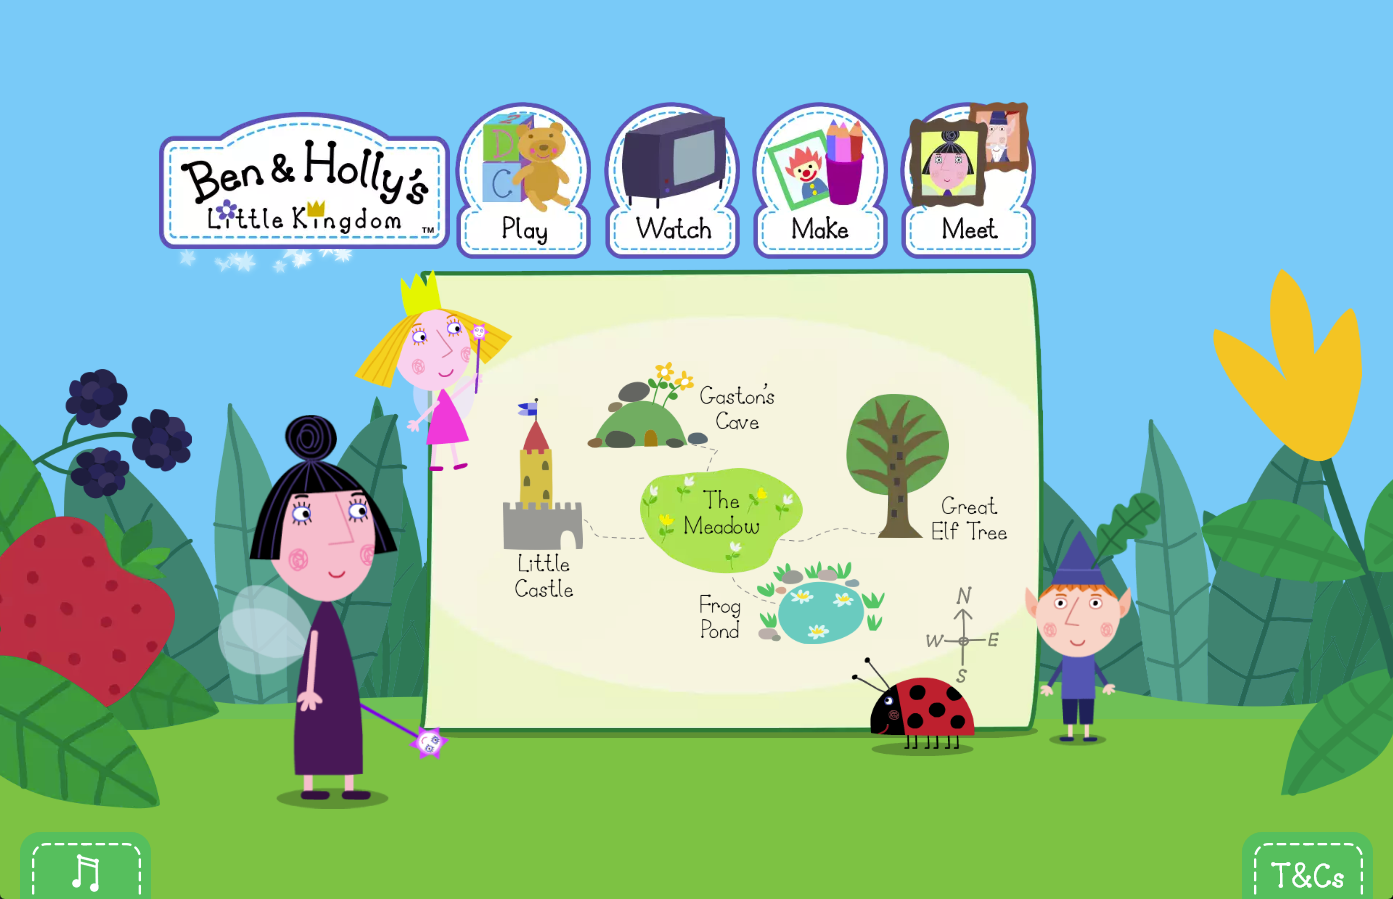 Benandholly is certified by the kidsafe seal program лера